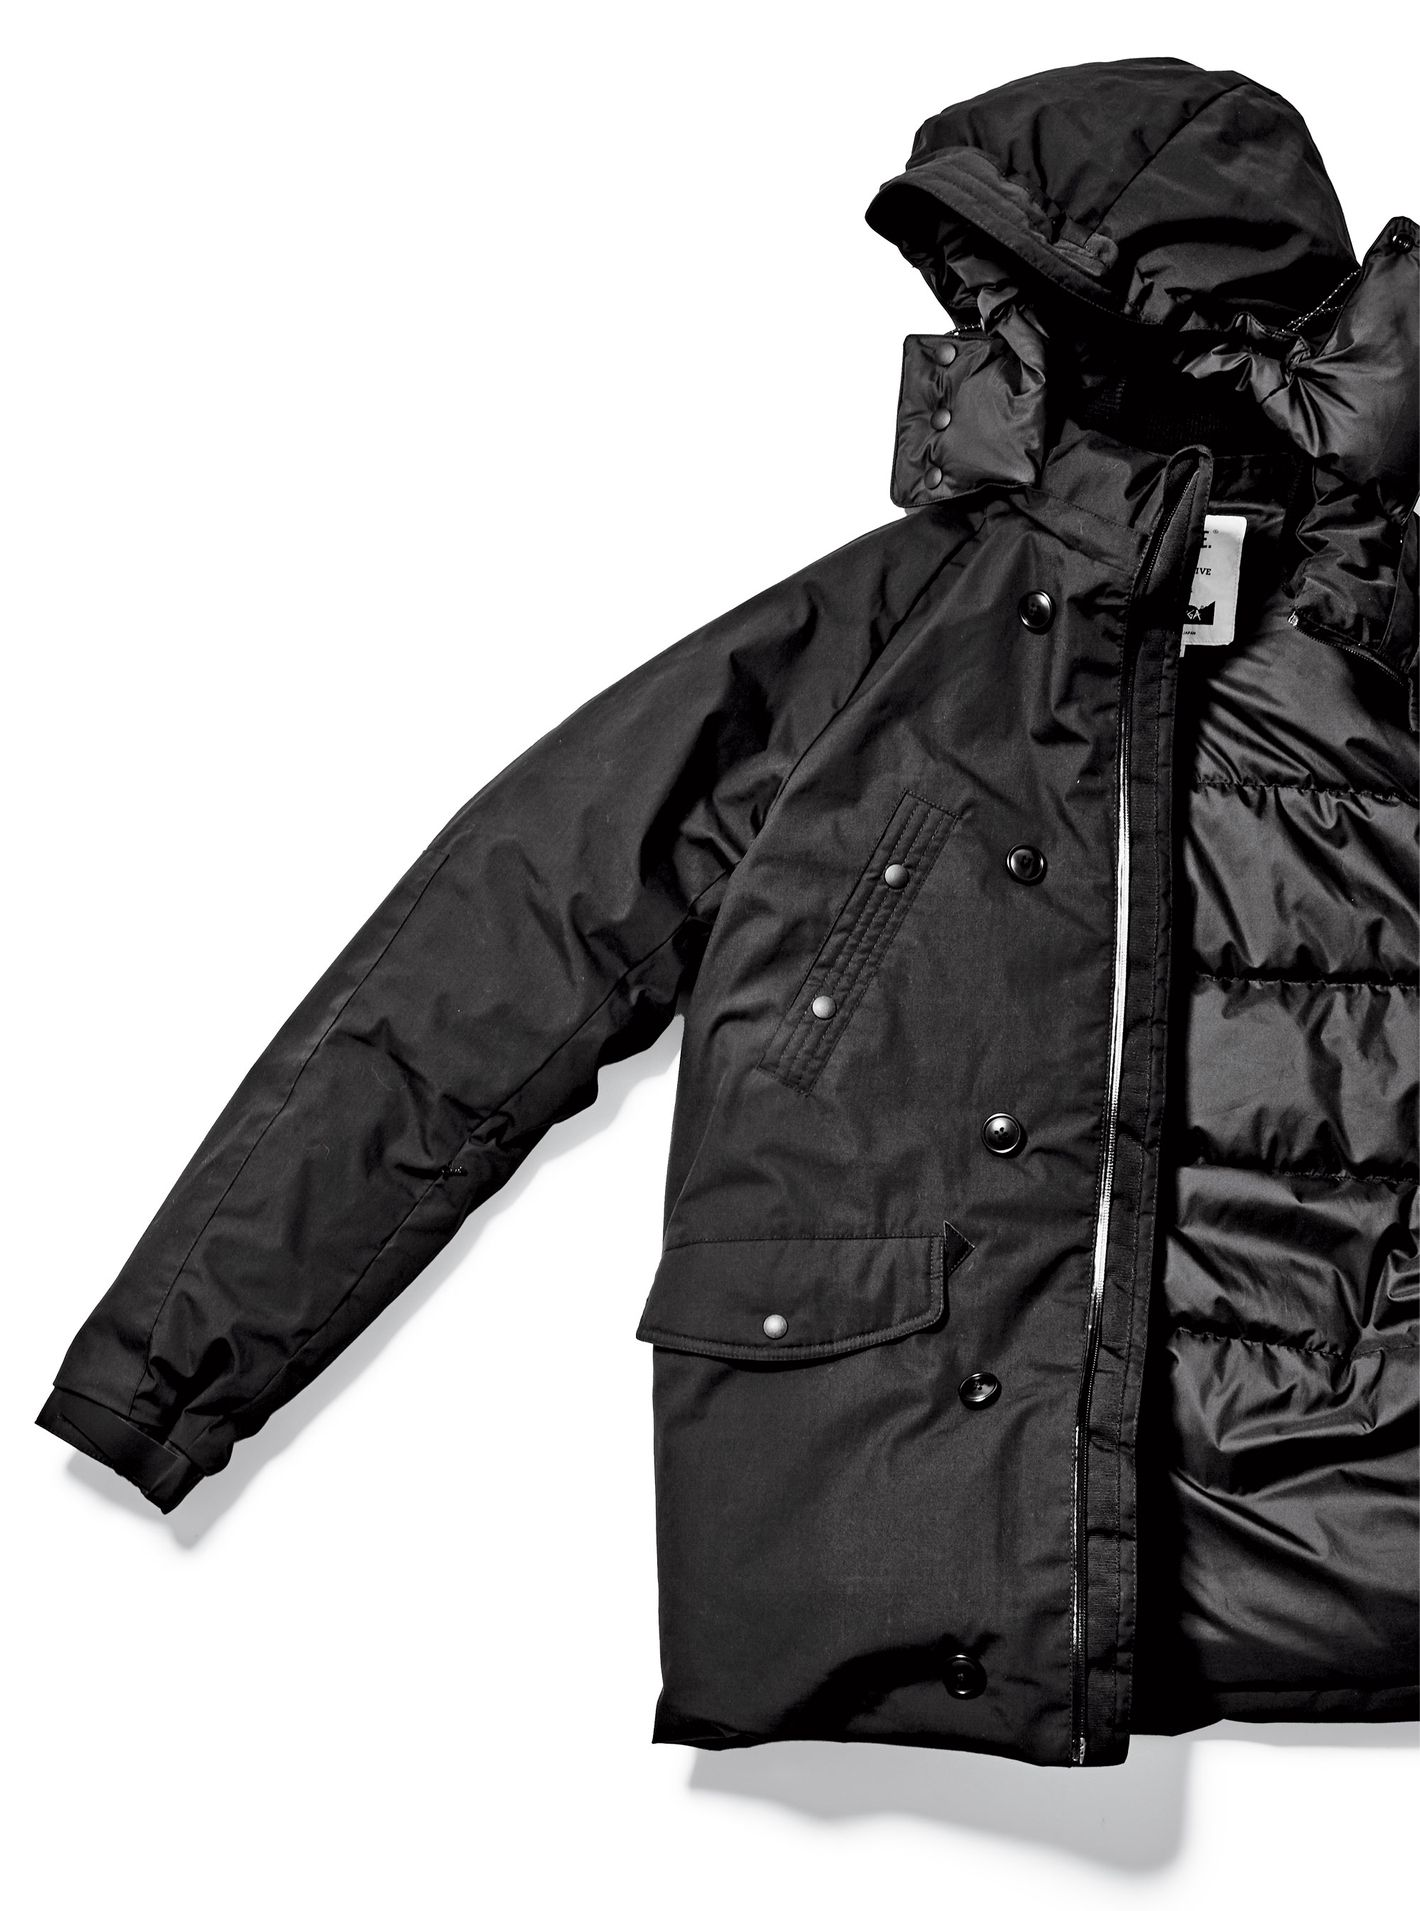 763d50ba6f2d Everything You Need to Know About Buying a Winter Coat